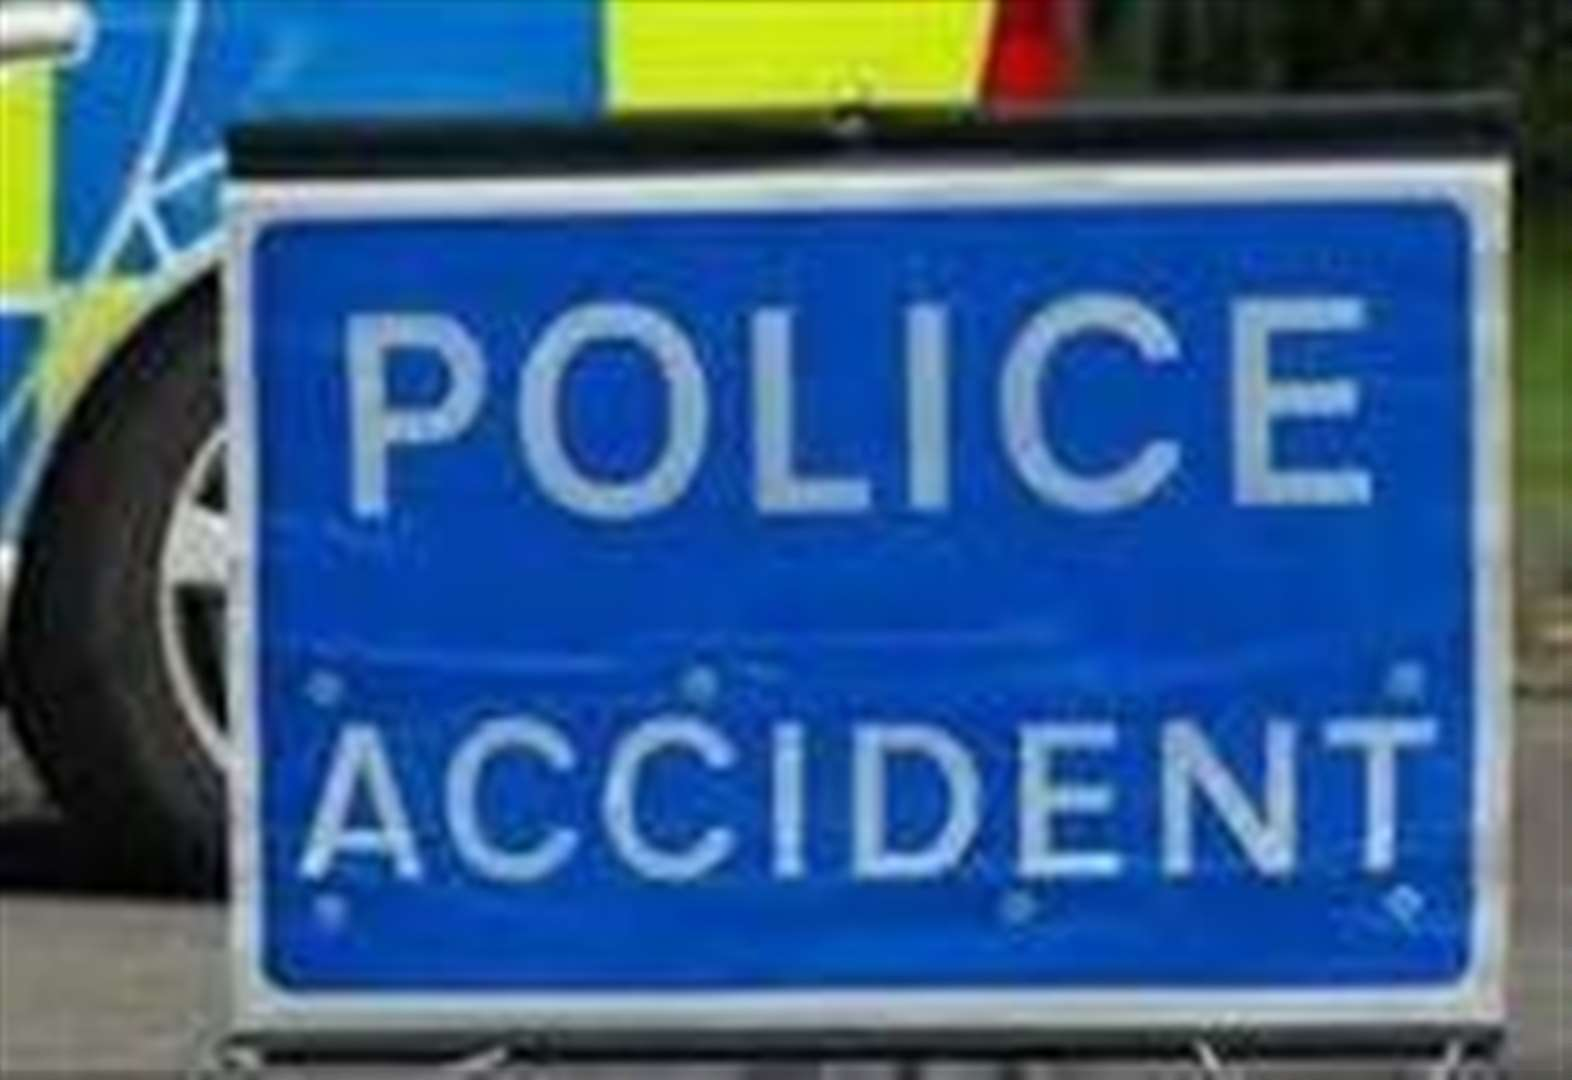 Man injured after falling on road in Grantham